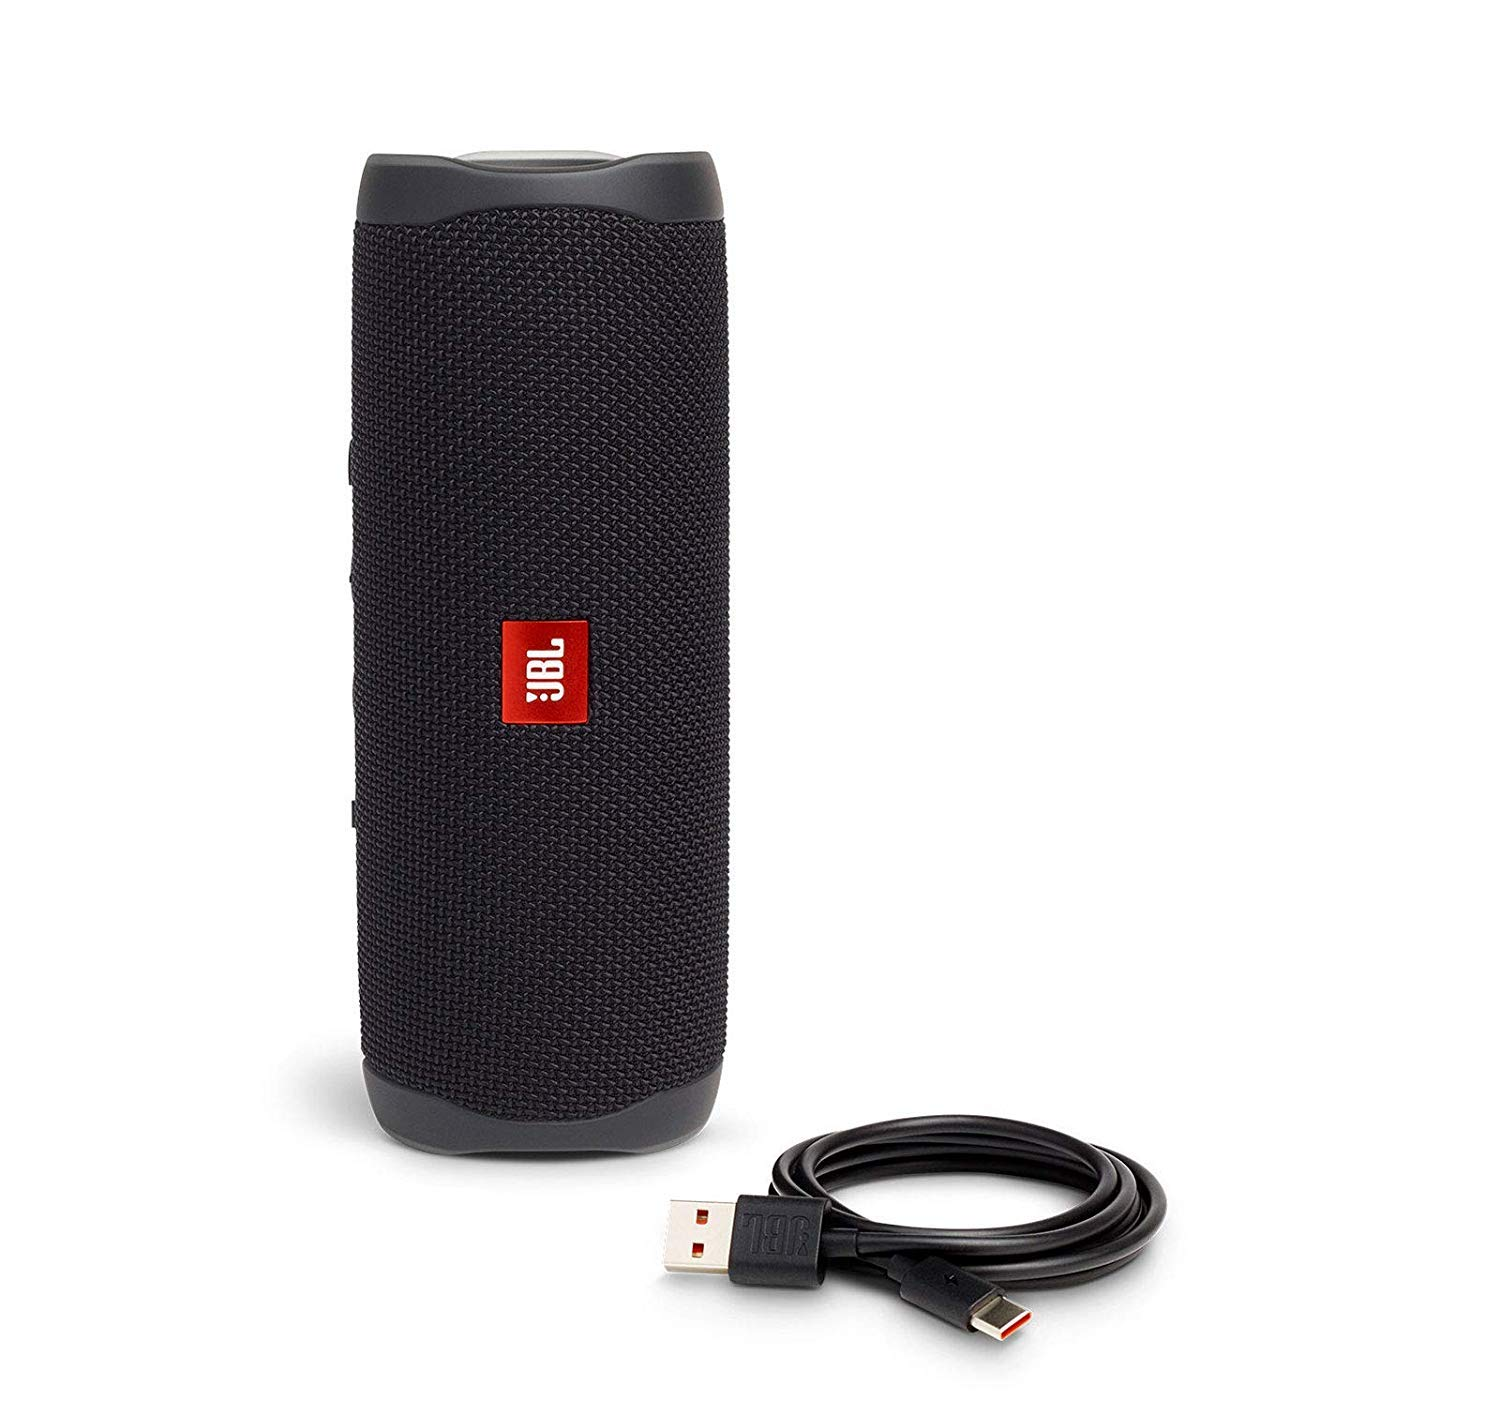 JBL FLIP 5 Waterproof Portable Bluetooth Speaker - Black [New Model] by JBL